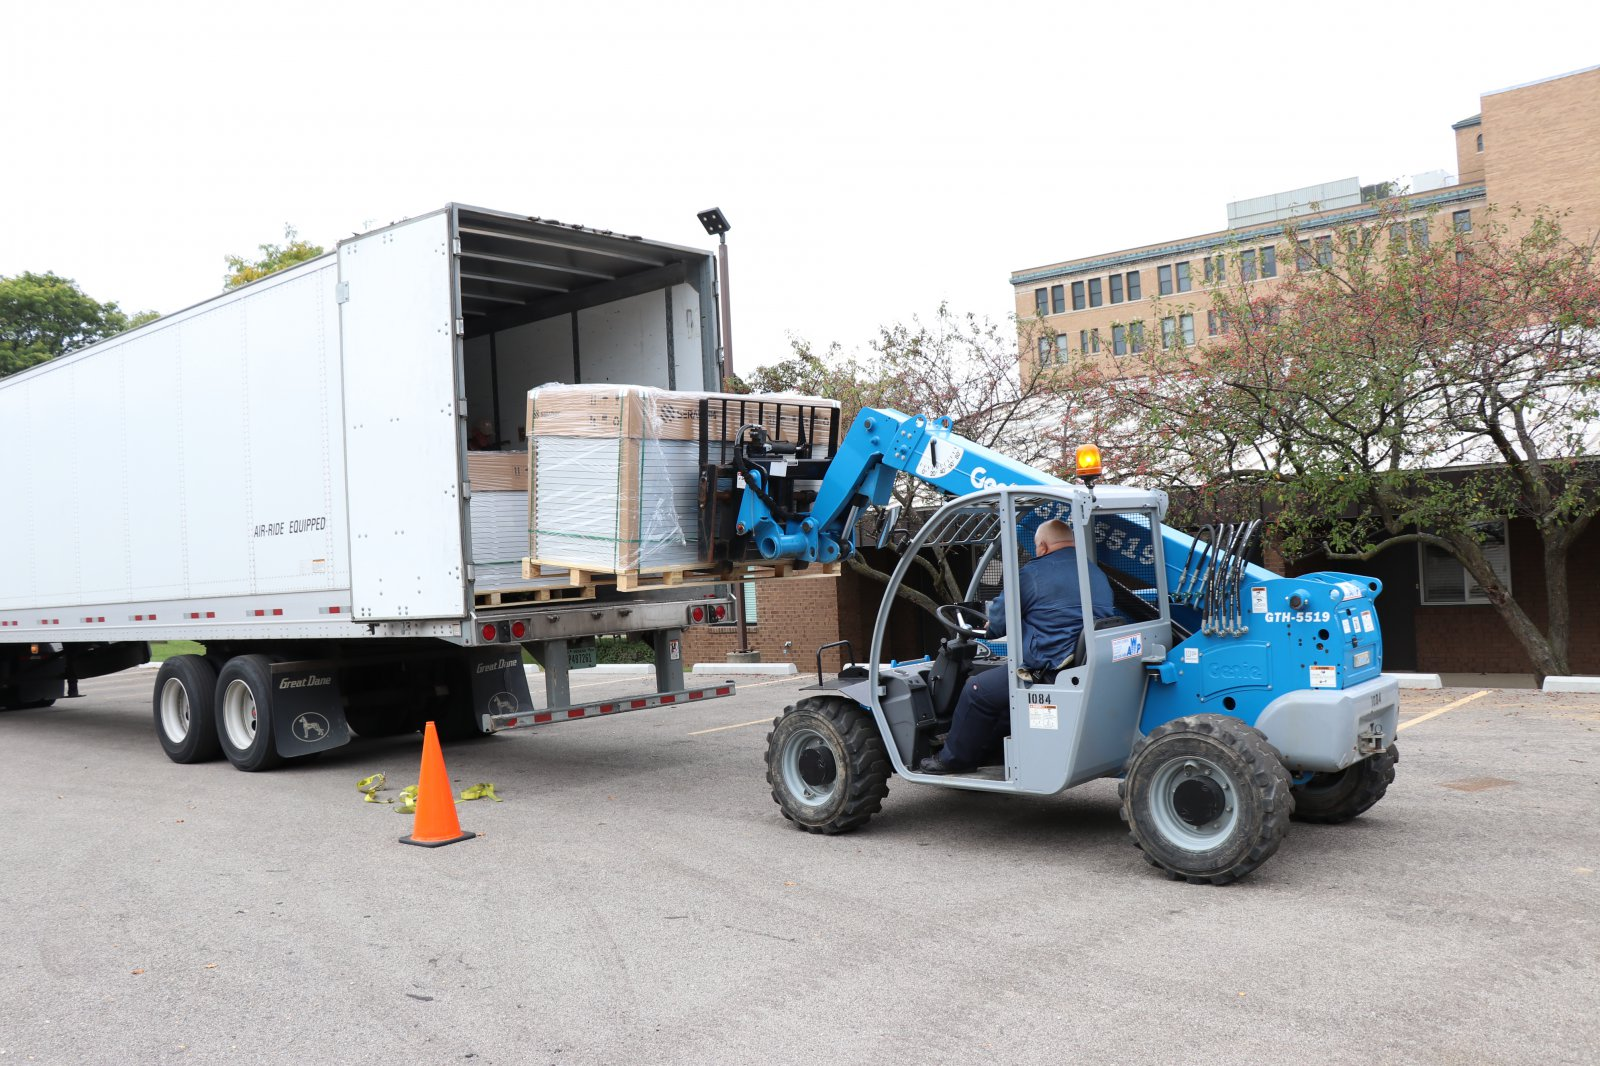 The first delivery of solar panels arrived from Mississippi on Oct. 13.